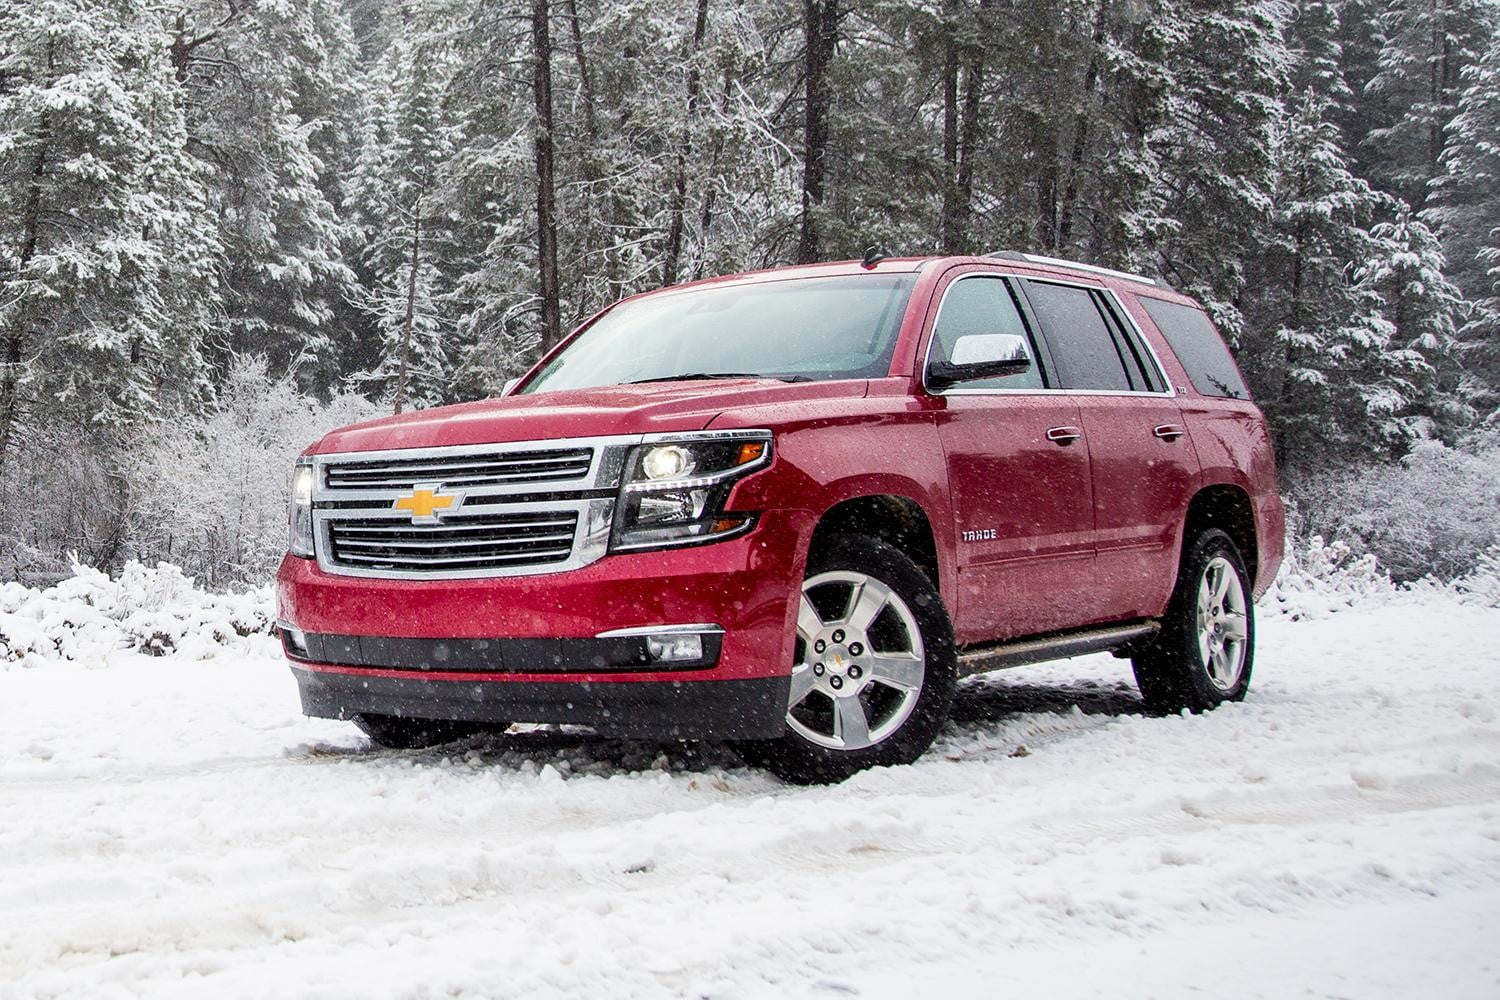 All Chevy chevy cars 2015 : 2014 versus 2015 Chevrolet Tahoe | Digital Trends